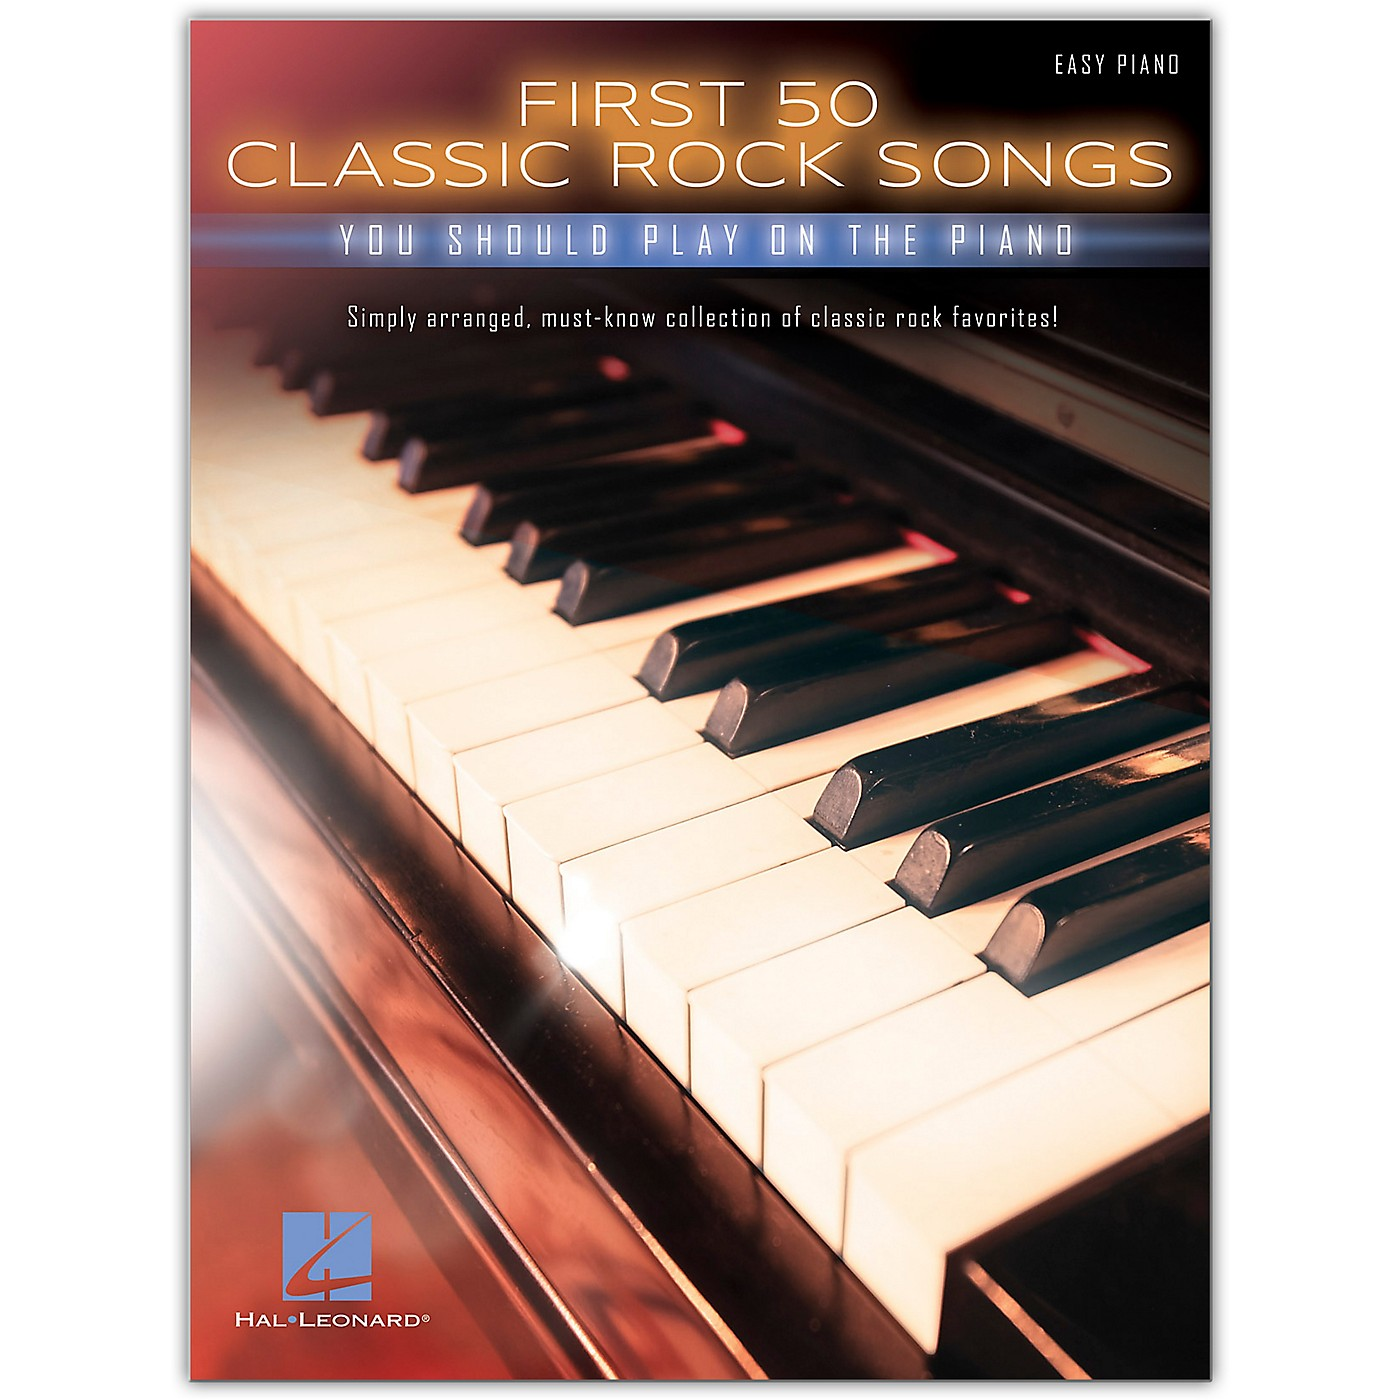 Hal Leonard First 50 Classic Rock Songs You Should Play on Piano (Easy Piano) thumbnail